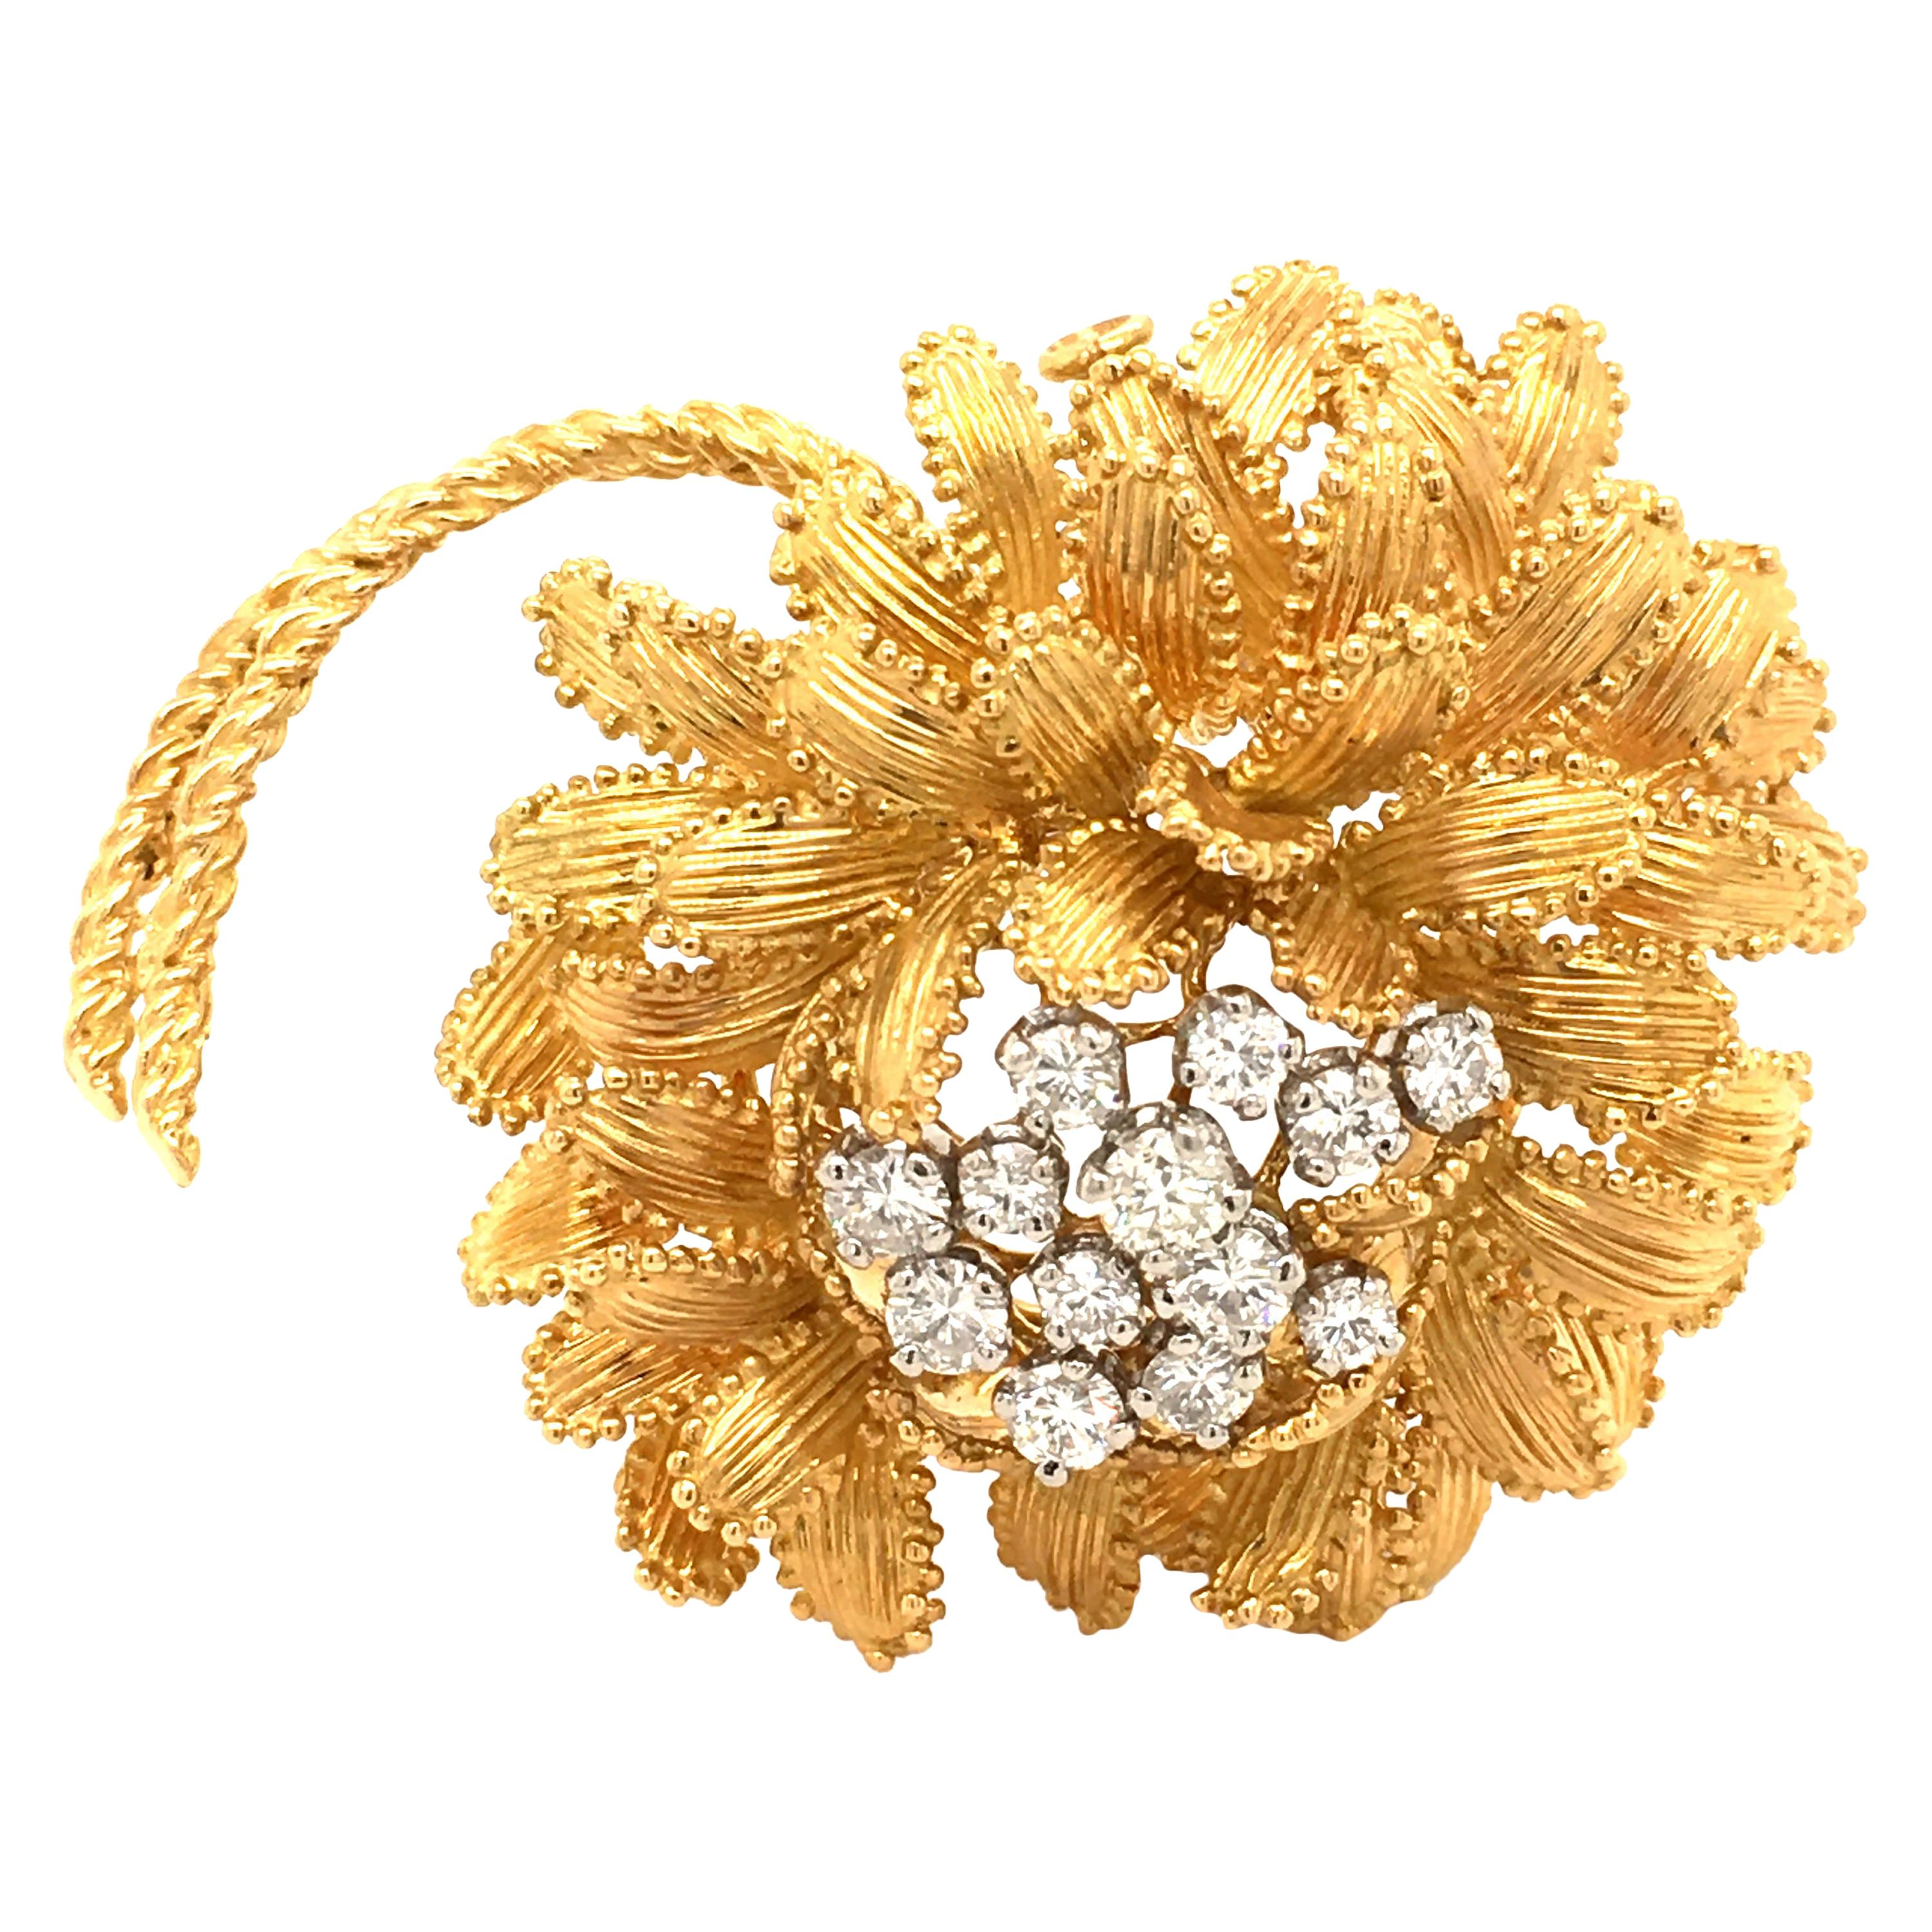 Gubelin Diamond Brooch in 18 Karat Yellow and White Gold